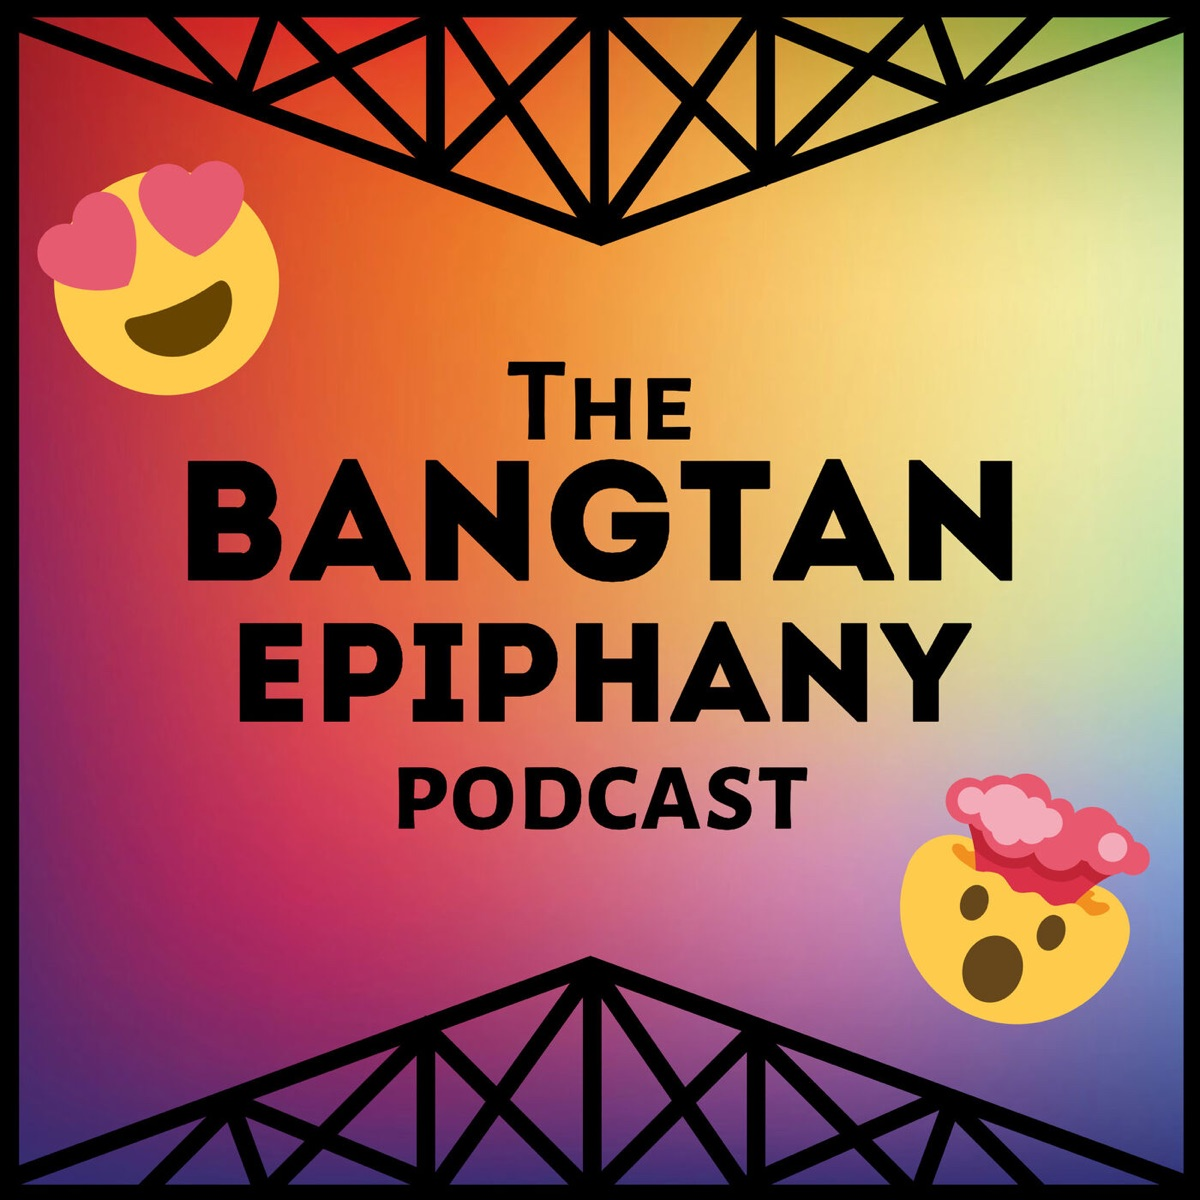 The Bangtan Epiphany - A BTS Podcast